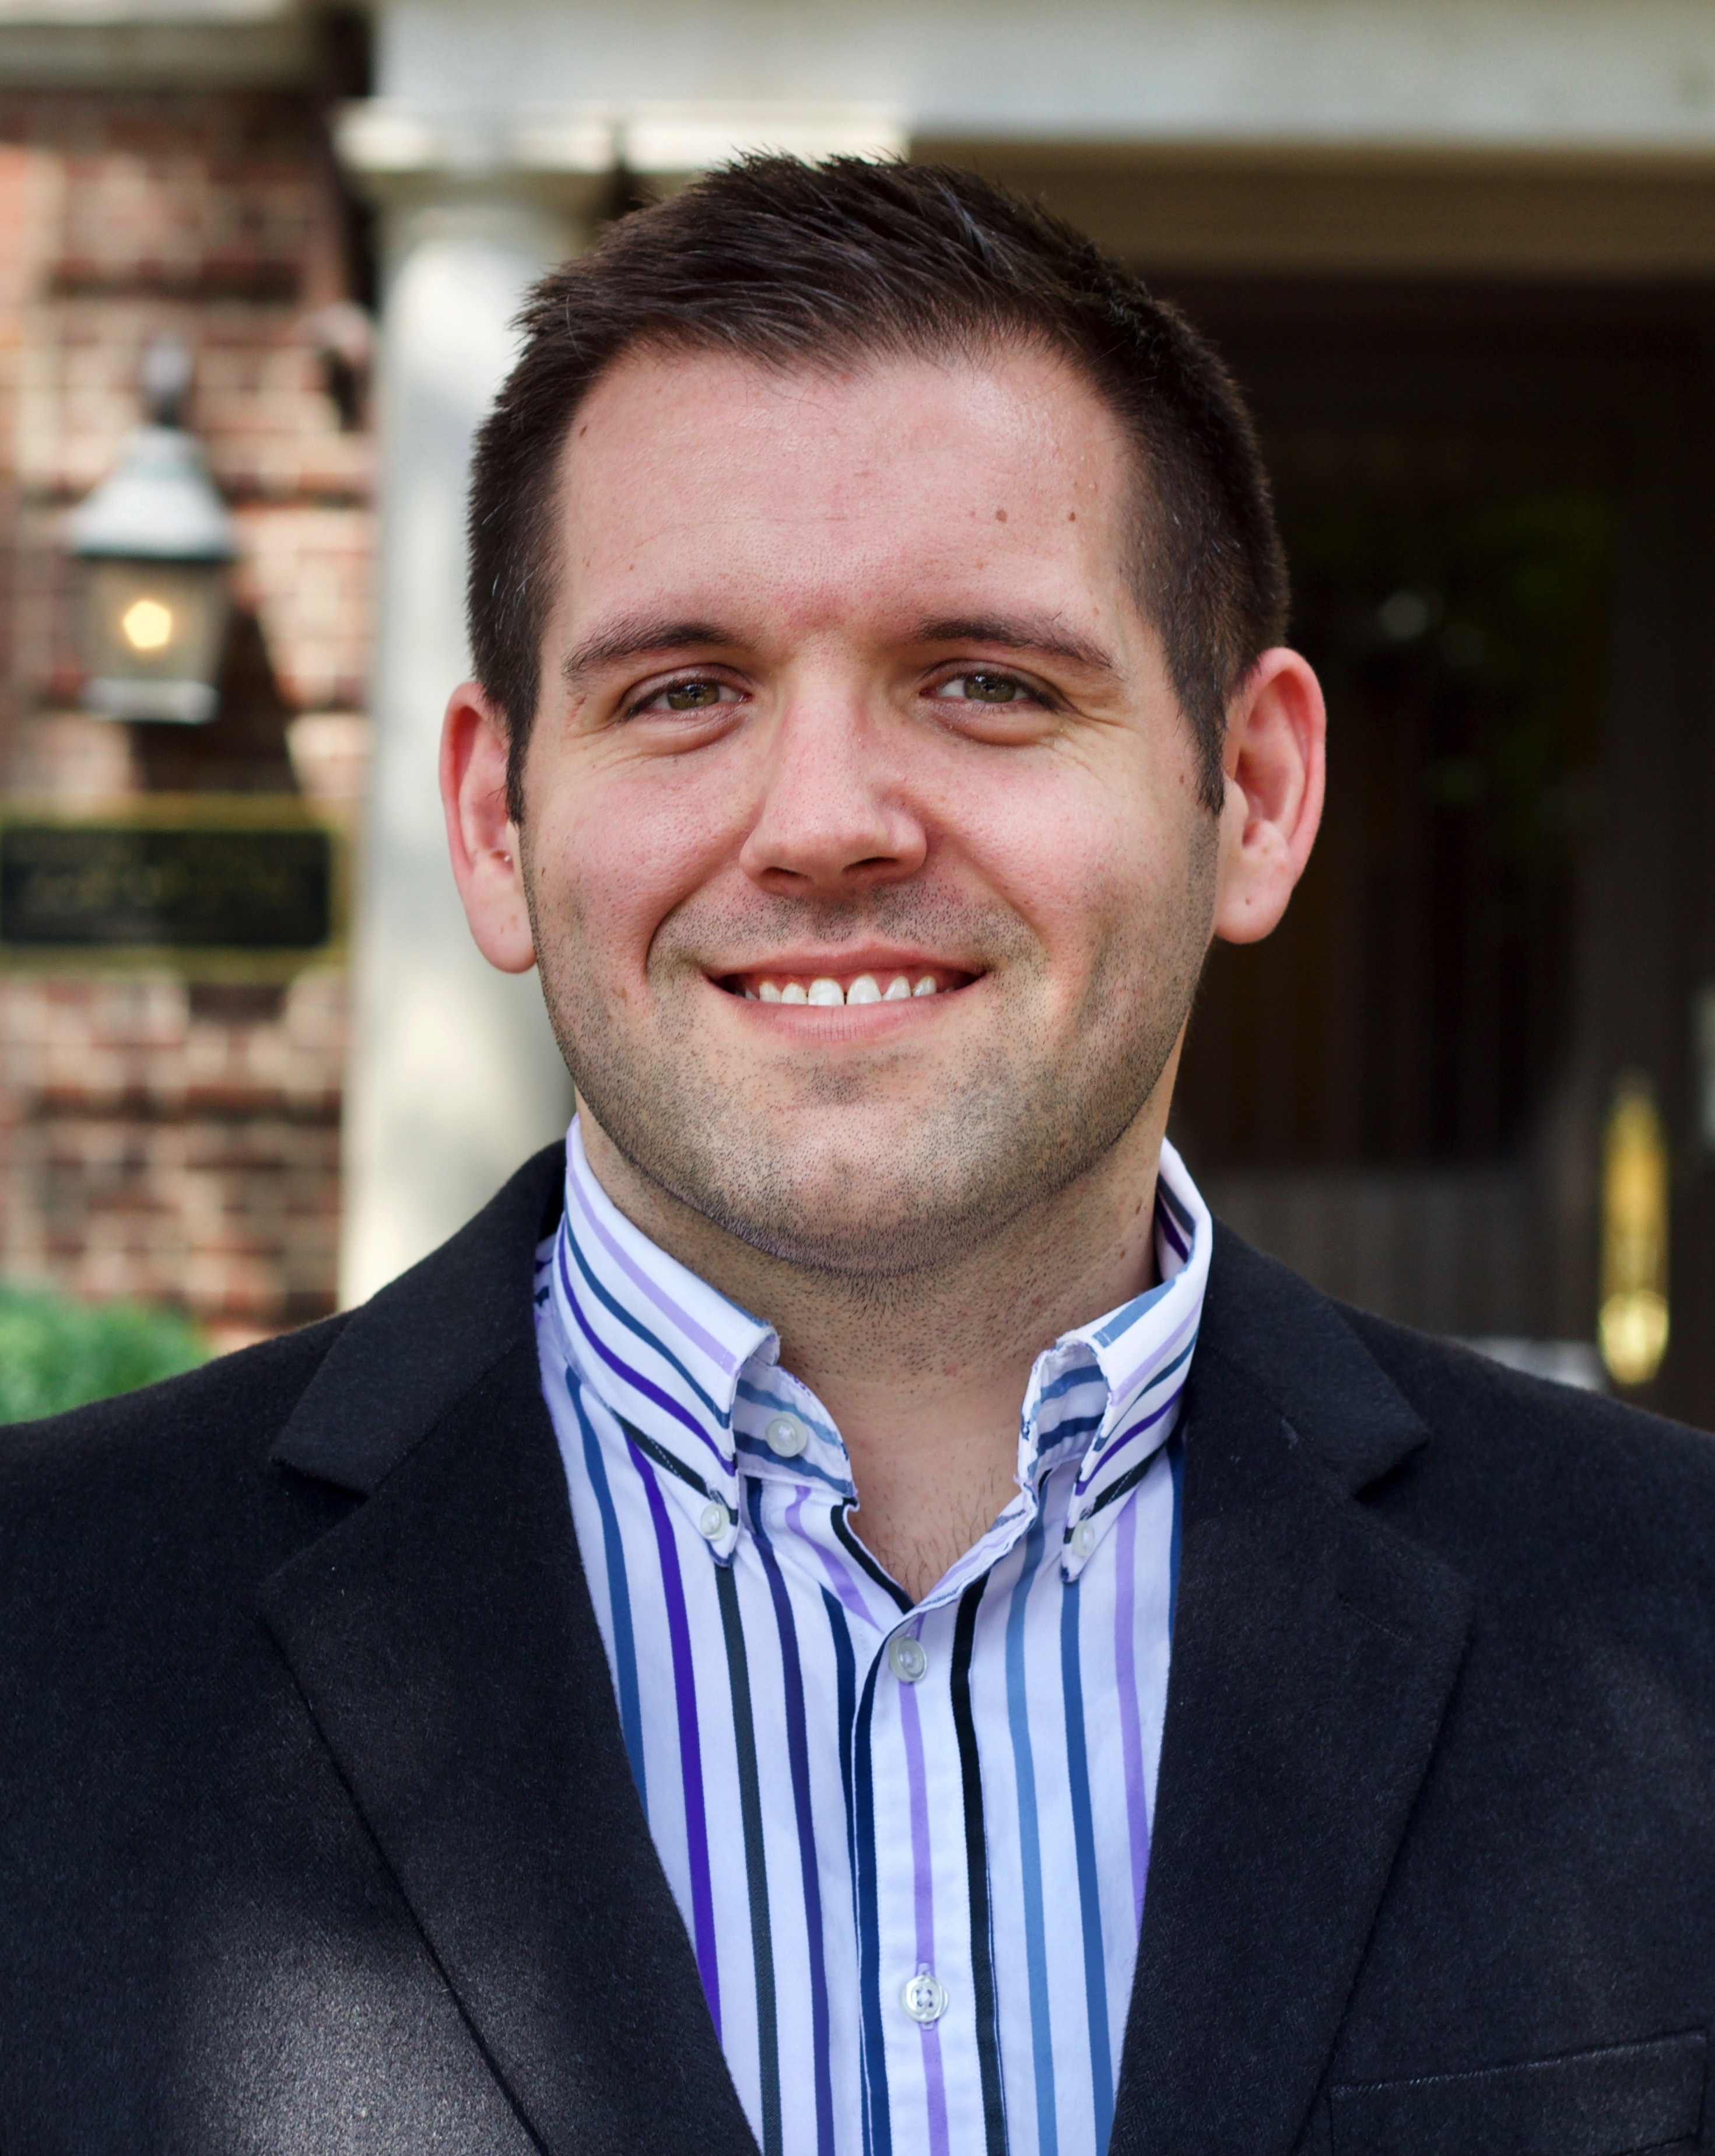 Jason Davis, Director of Operations and Development